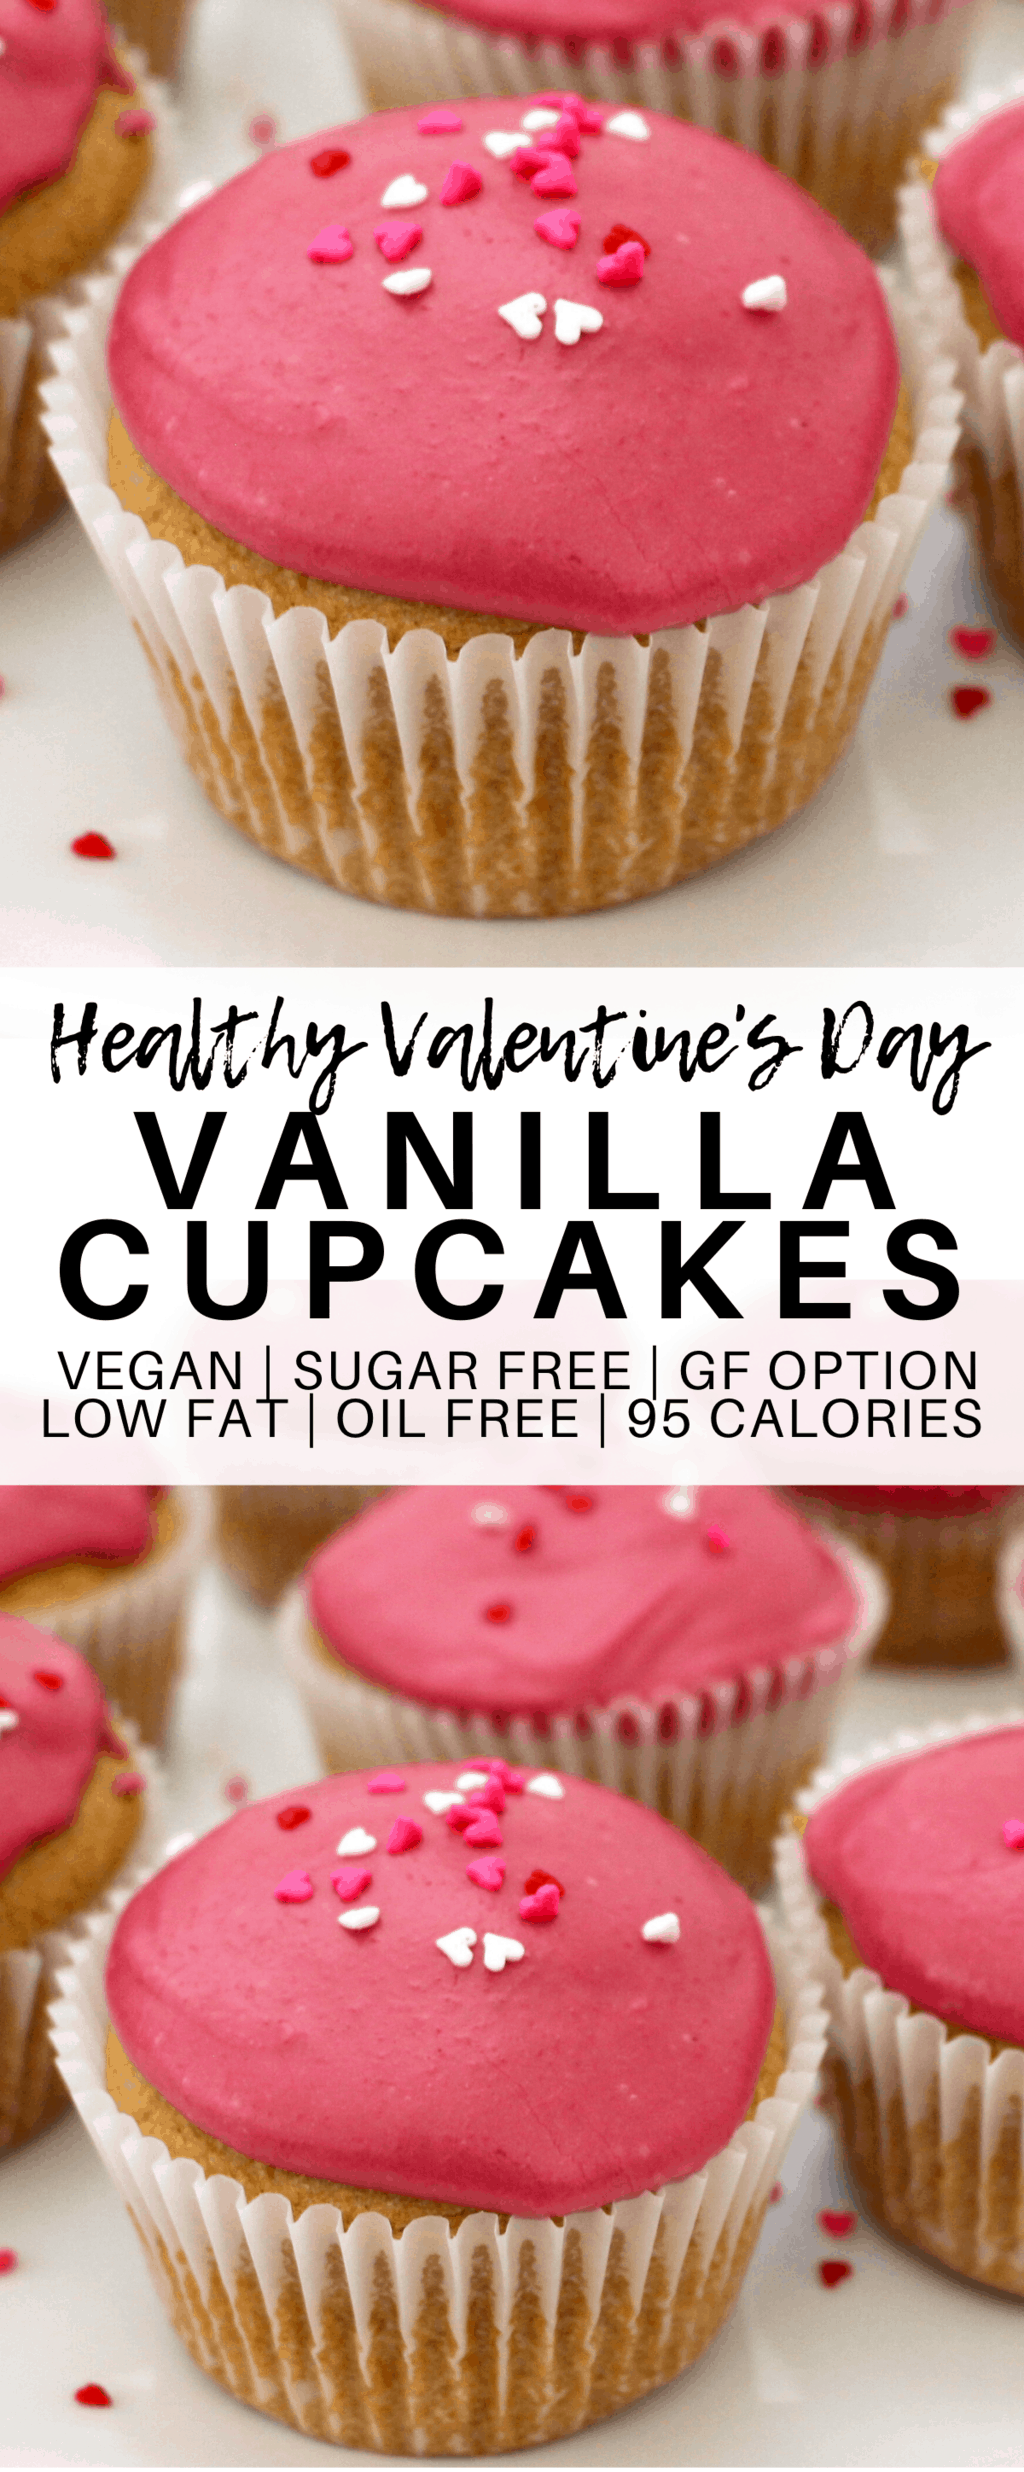 These super simple and festive Vegan Vanilla Cupcakes are perfect for Valentine's day! They are sugar-free, low-fat, oil-free with a gluten-free option. Also super low-calorie - only 95 calories each!